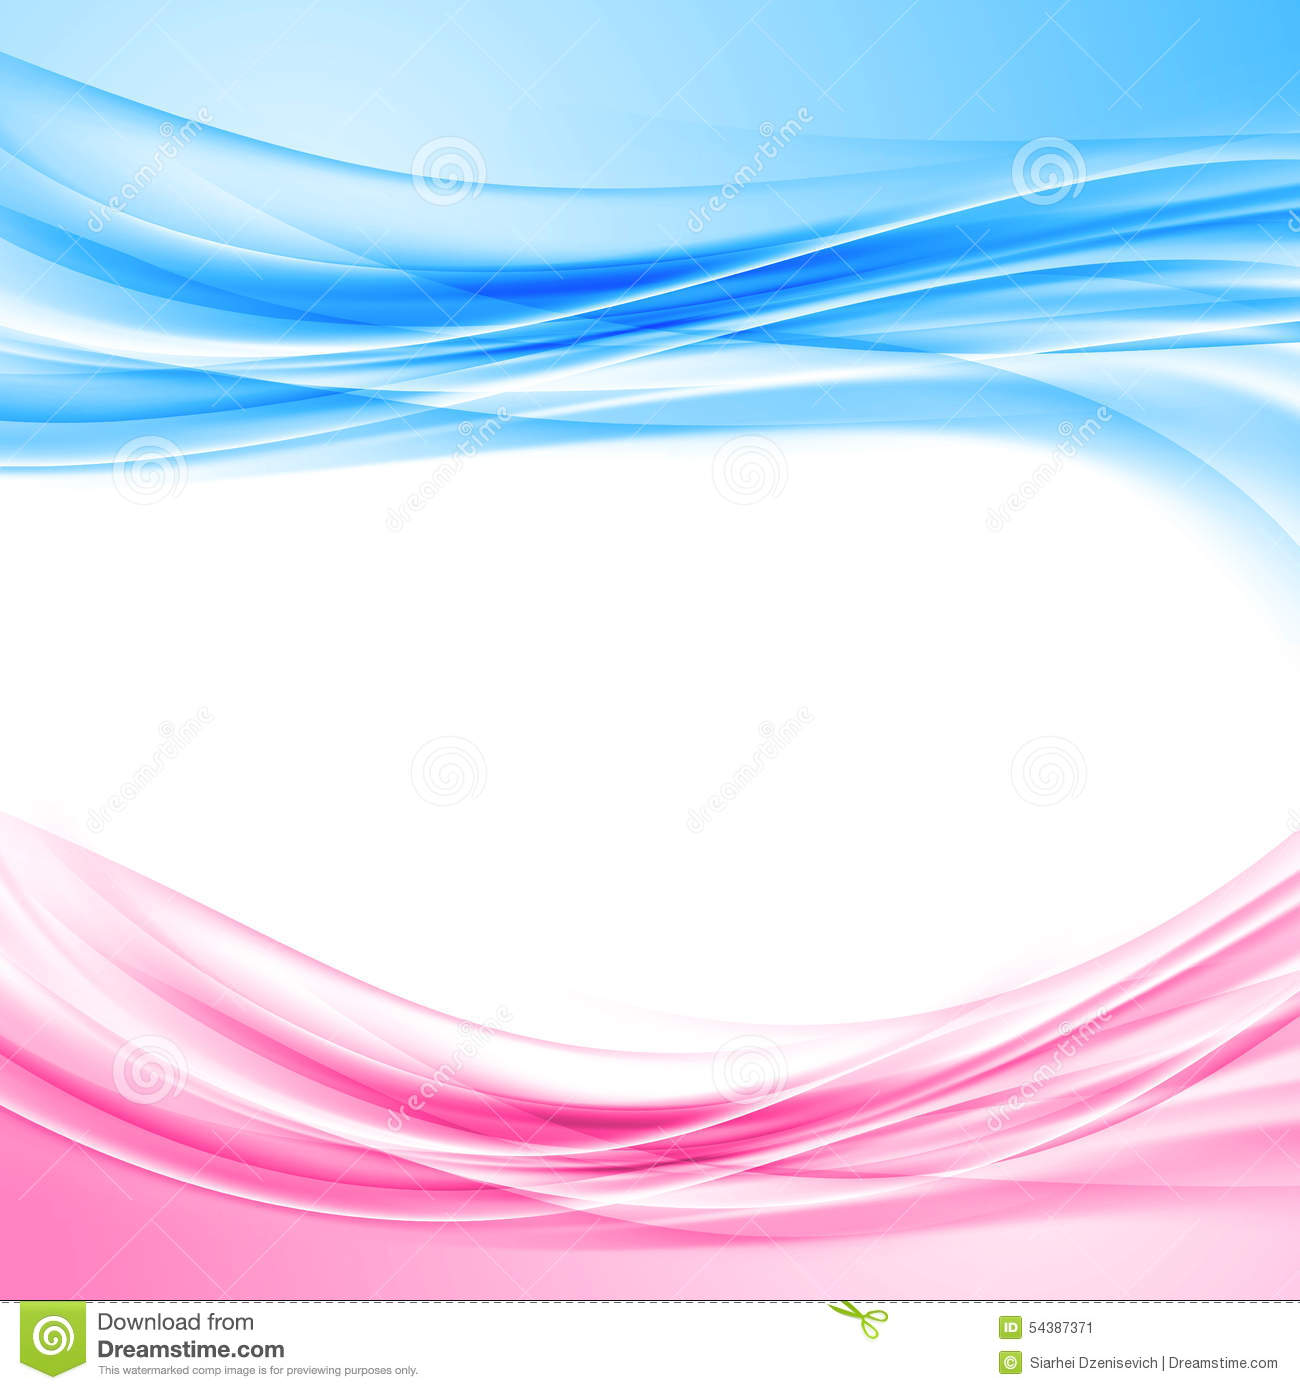 blue and pink border abstract background wave pattern layout template ...